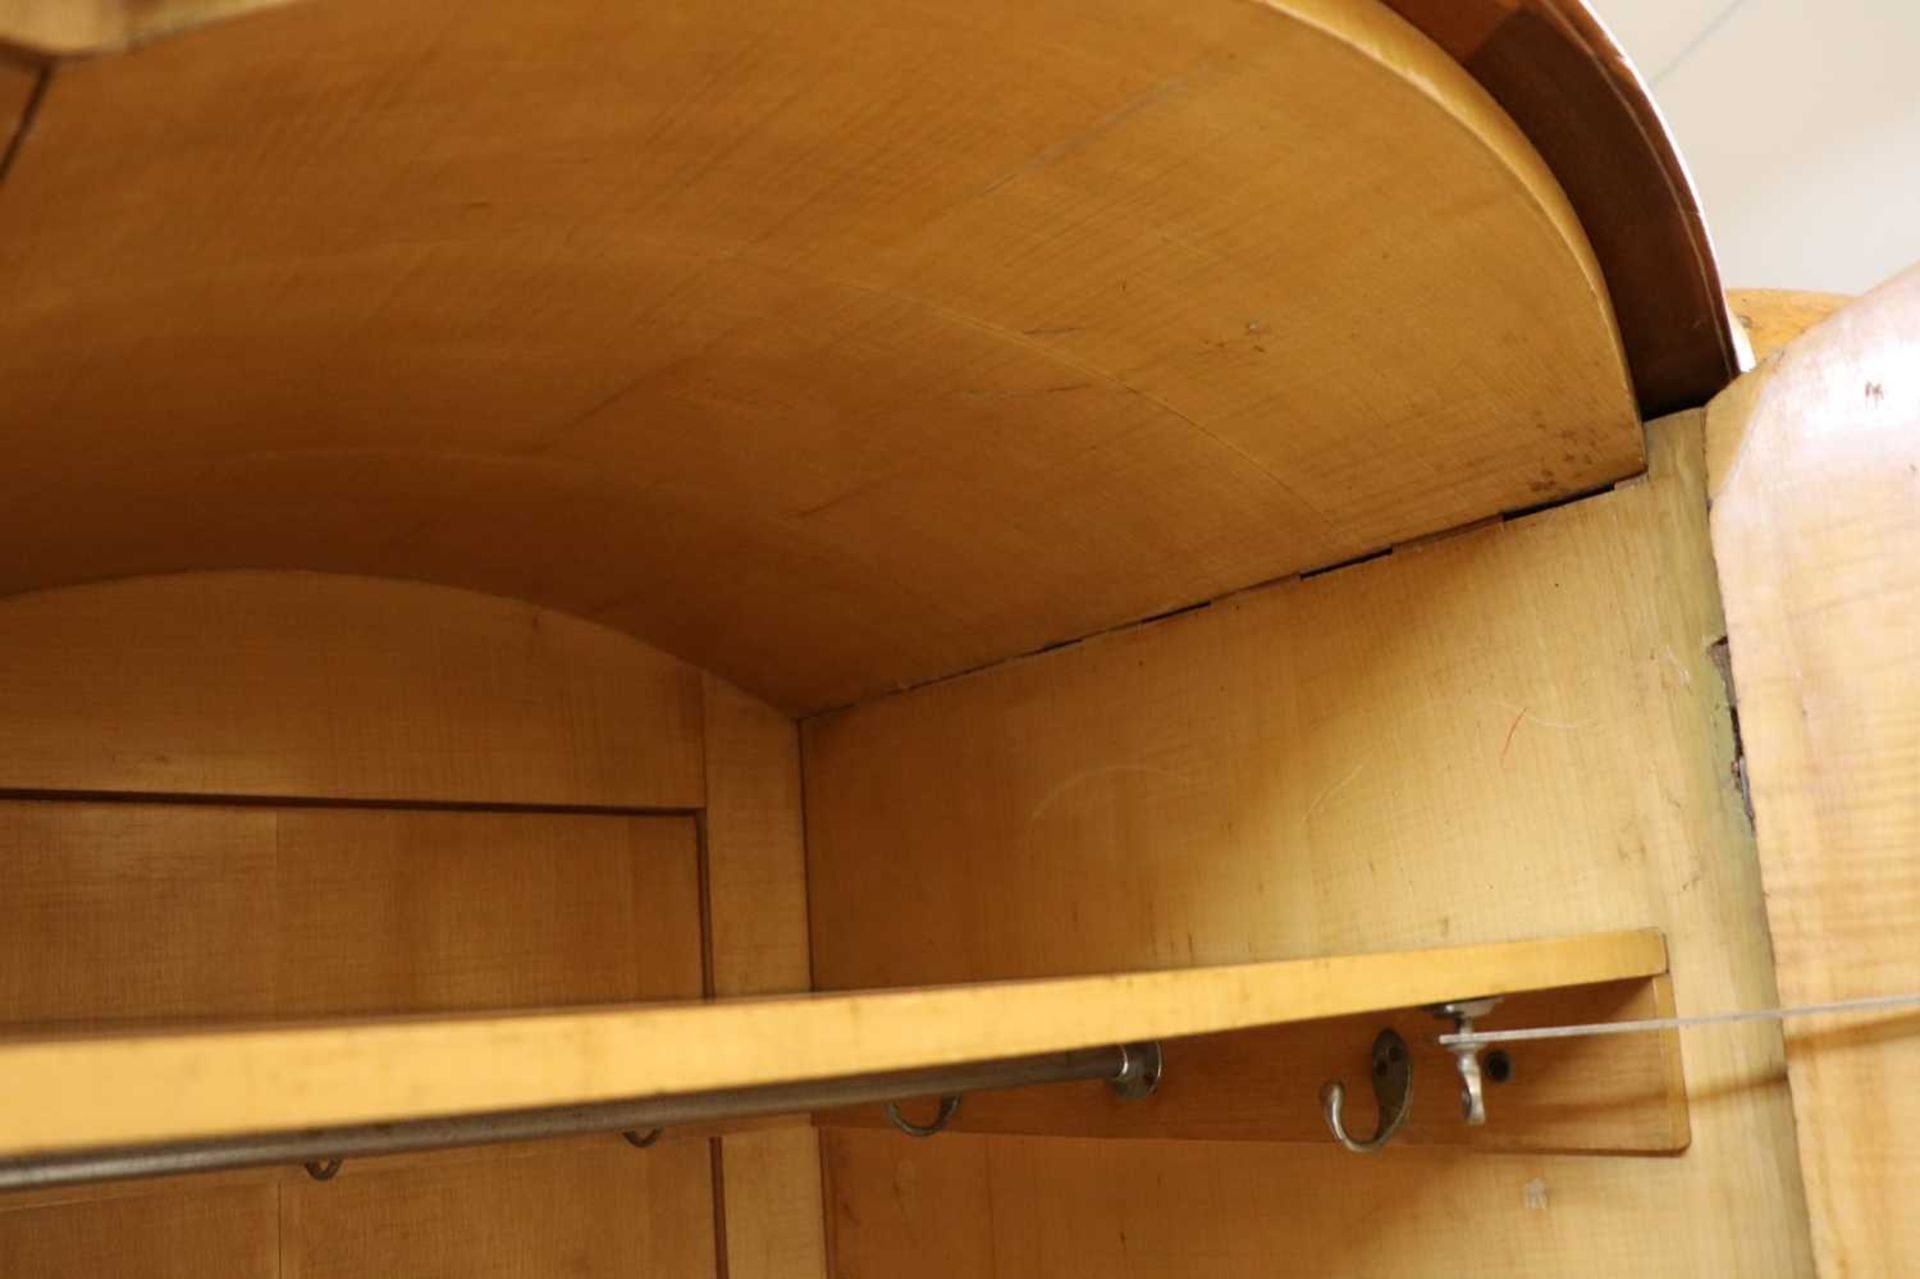 An Art Deco burr walnut and maple bedroom suite, - Image 10 of 45